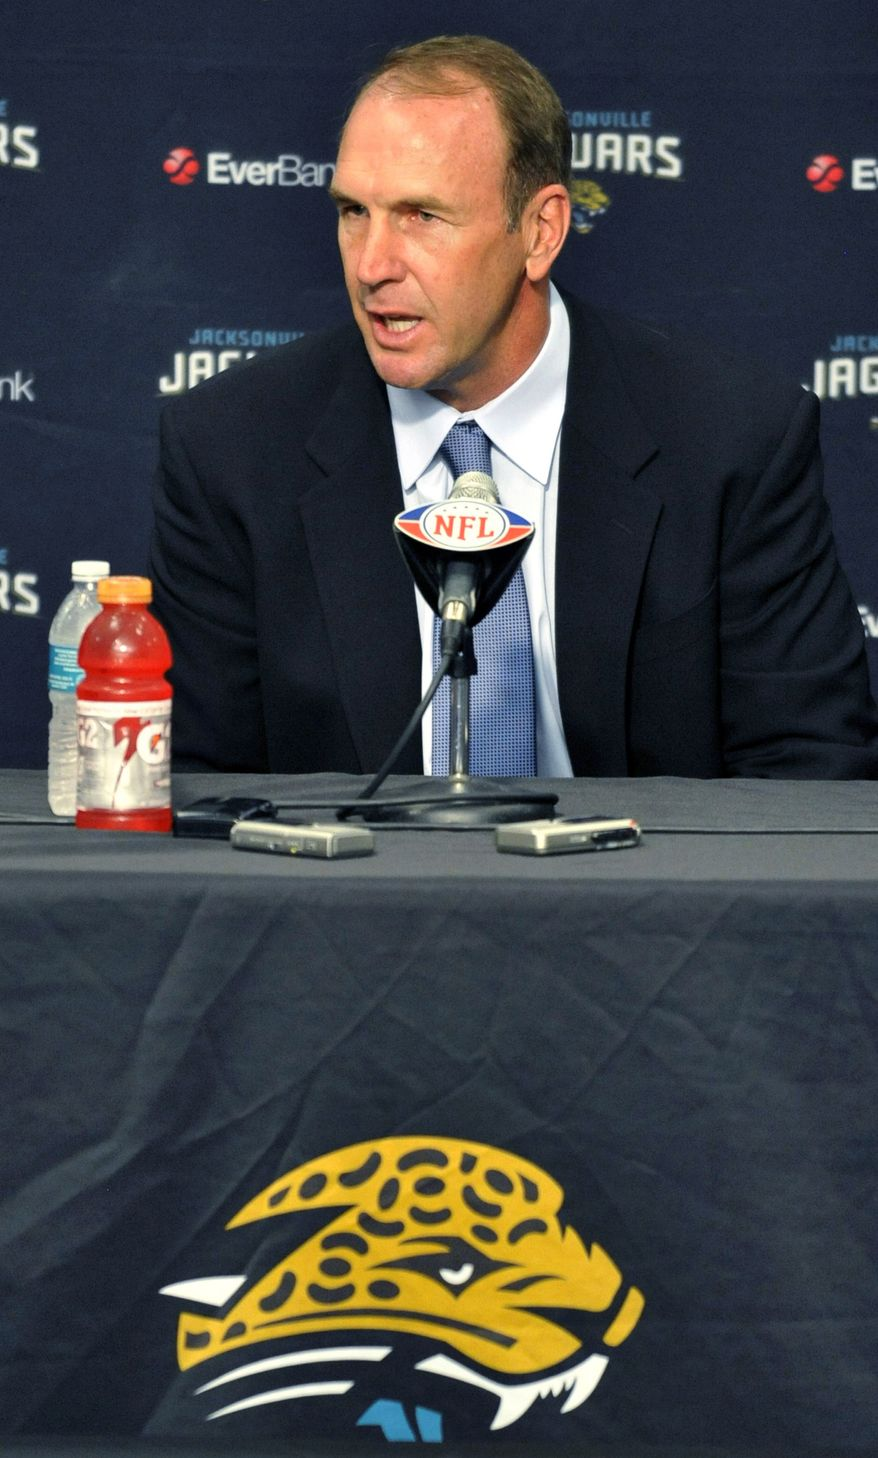 Mike Mularkey was named the Jacksonville Jaguars head coach after spending the 2008-11 seasons as the Atlanta Falcons offensive coordinator. (Associated Press)